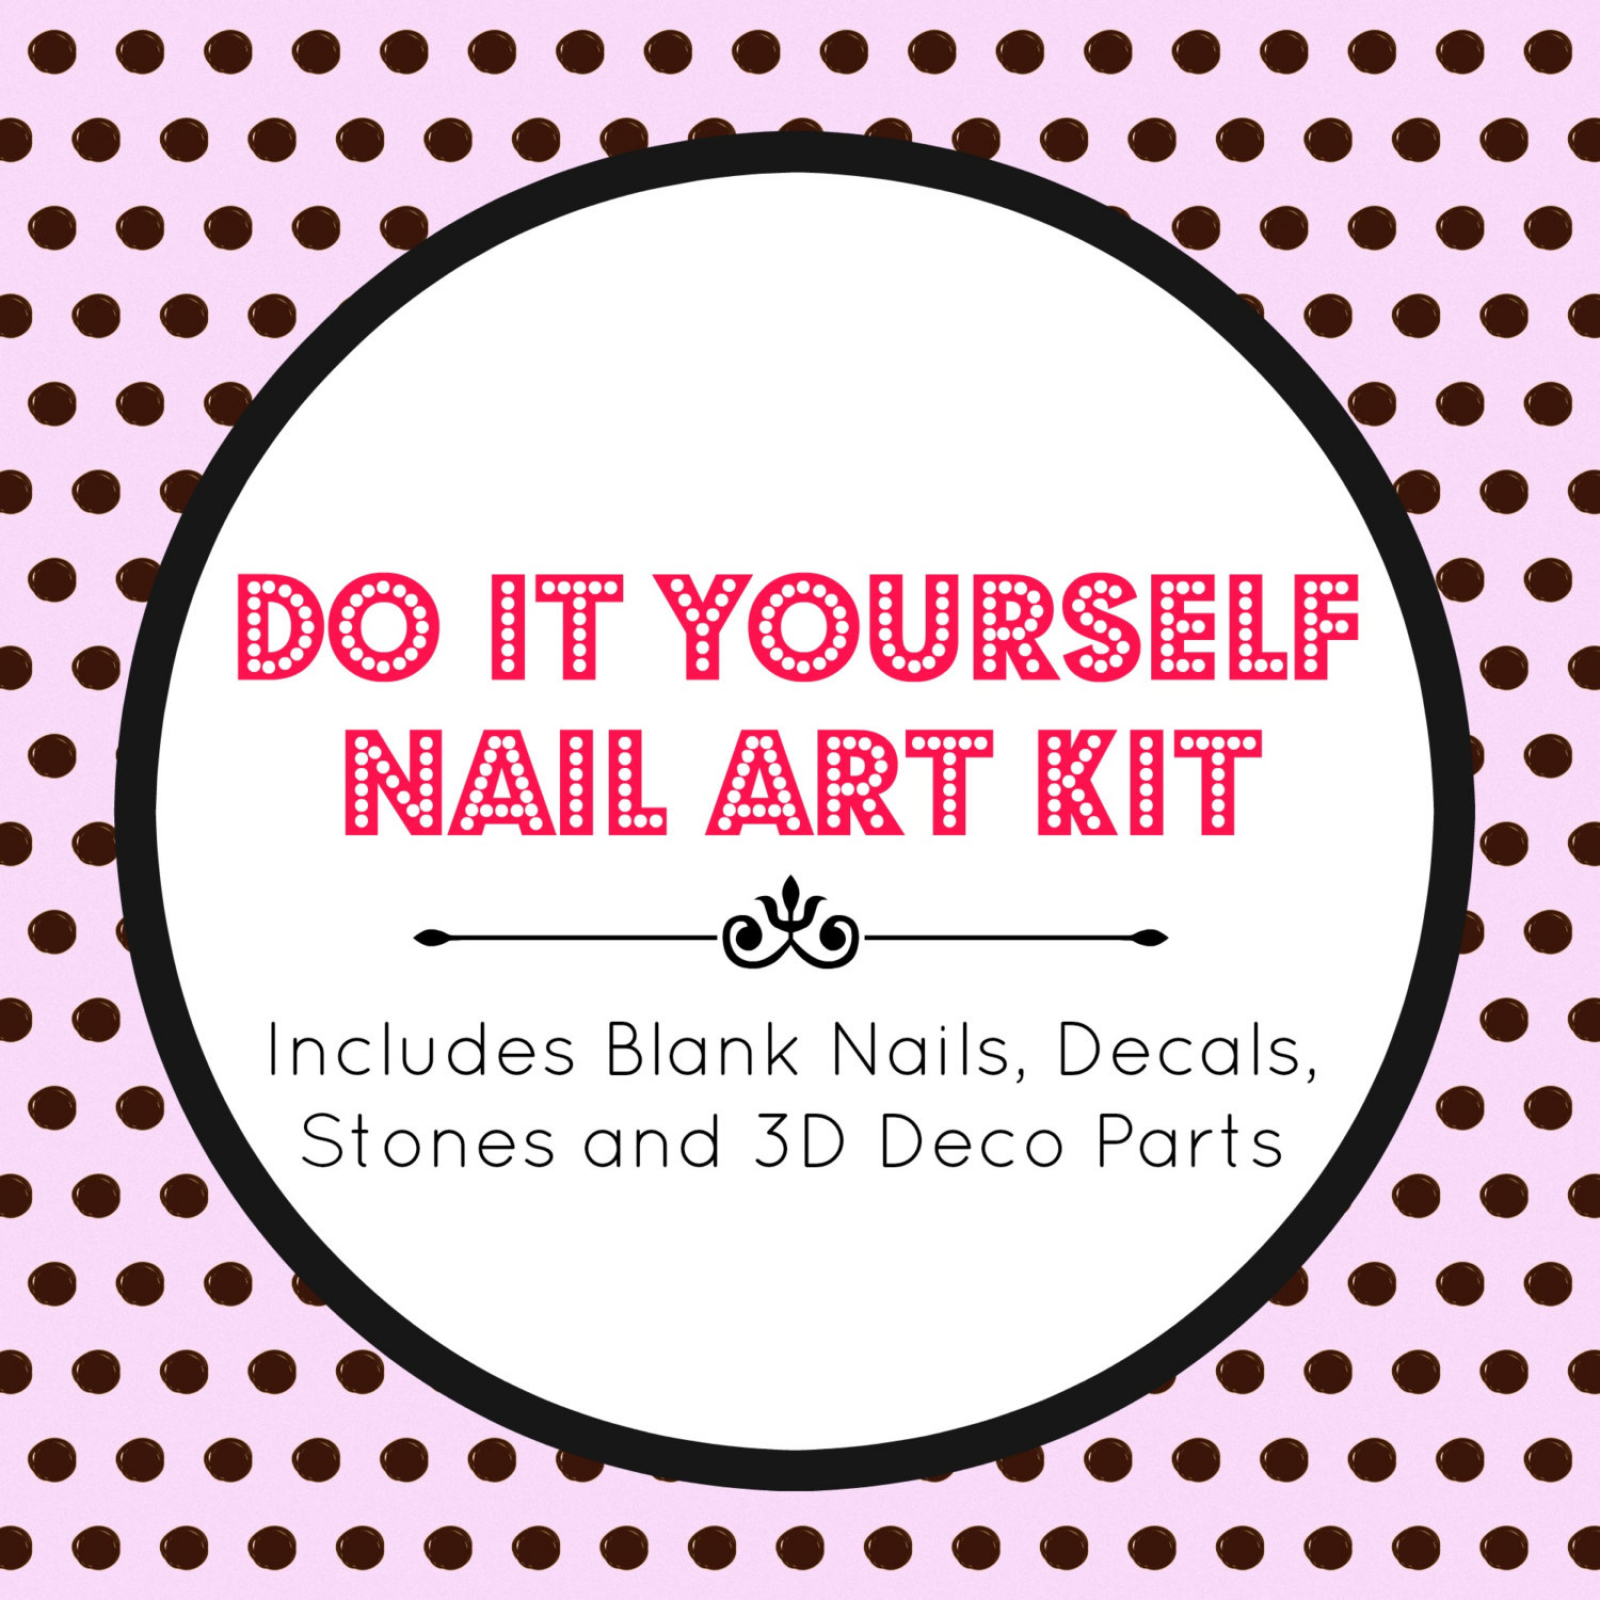 Diy nail art kit in your choice of sizes nails by nevertoomuchglitter diy nail art kit in your choice of sizes solutioingenieria Choice Image